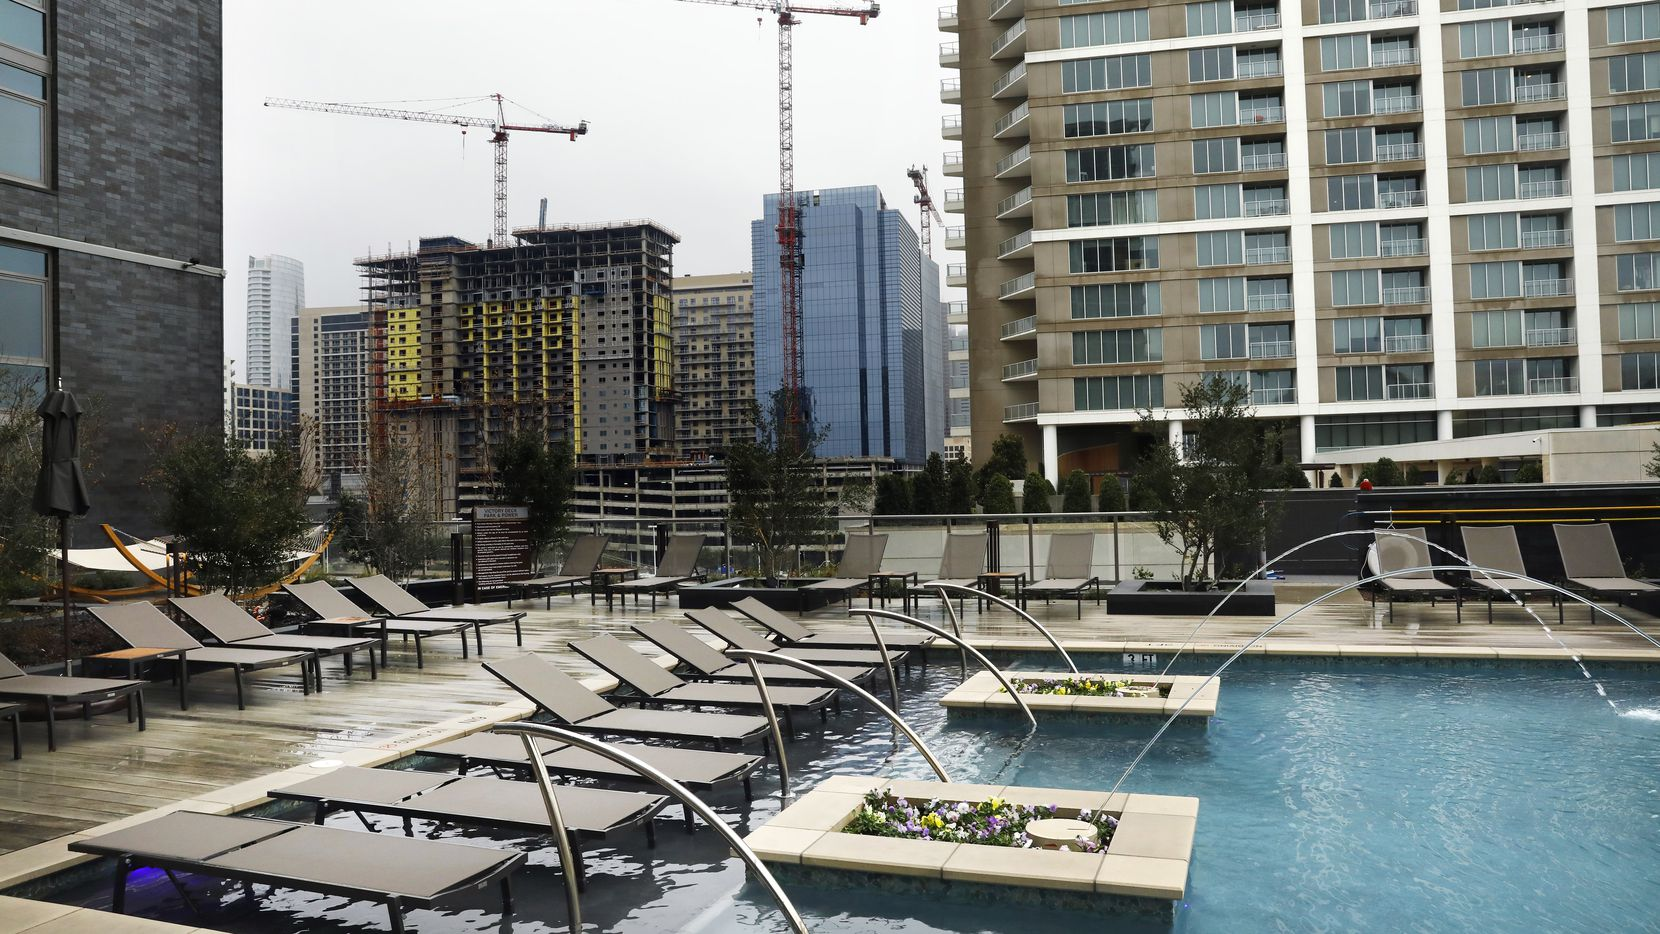 Almost 3,000 new high-rise apartments have opened in the Dallas area and another 4,500 are on the way.